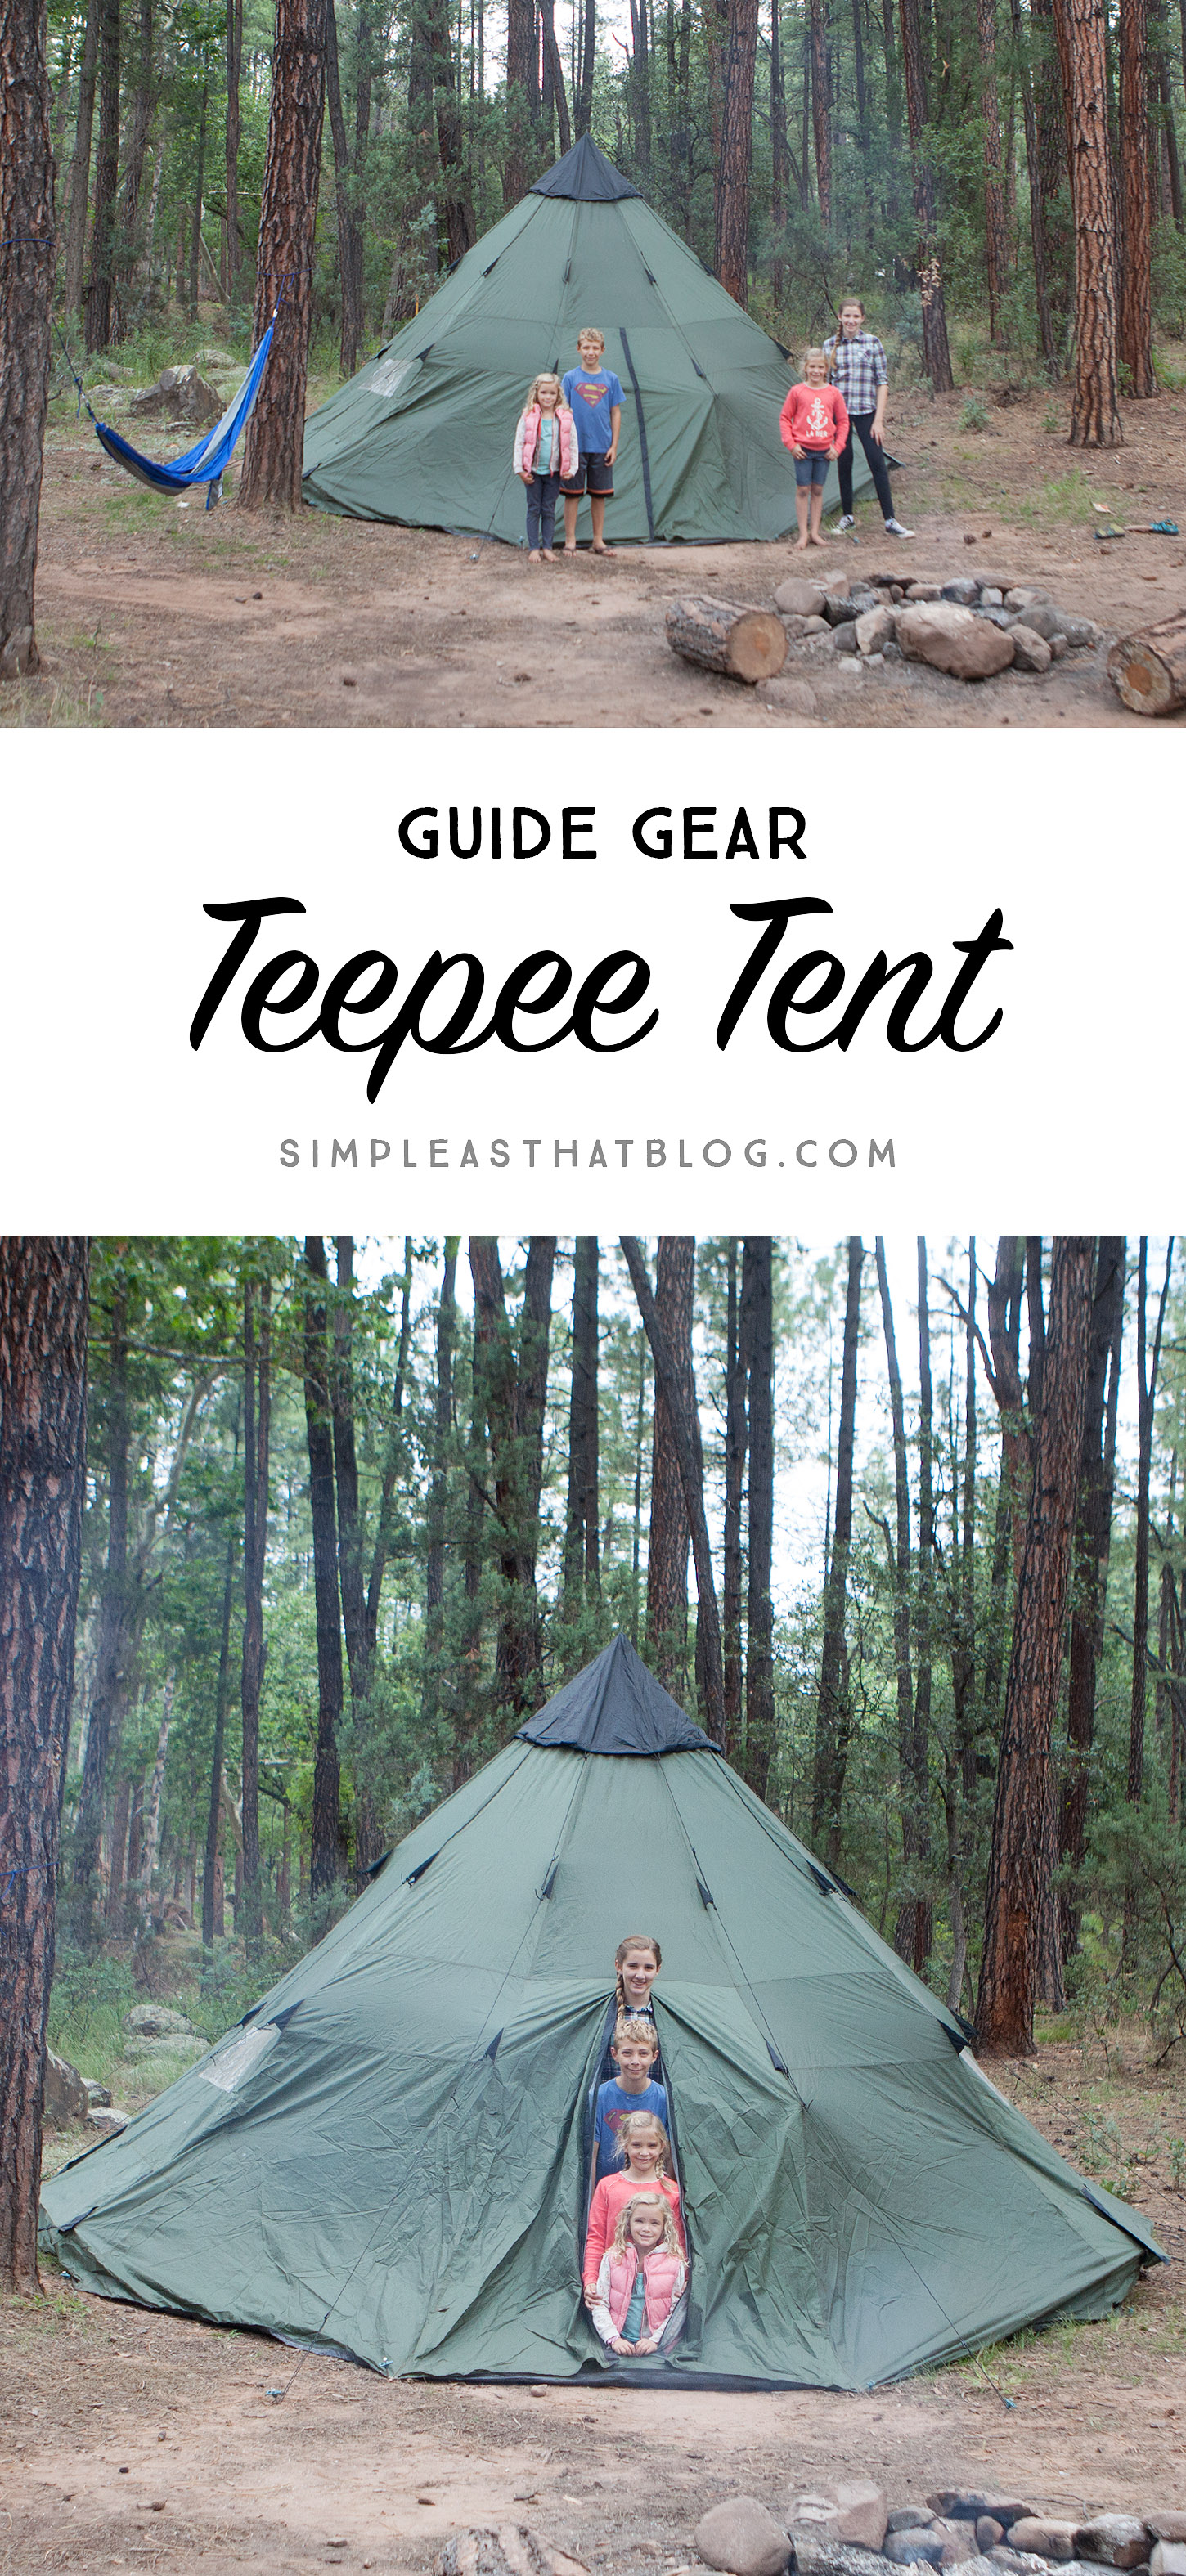 Guide Gear Teepee Tent // Essential Outdoor Family Adventure Gear